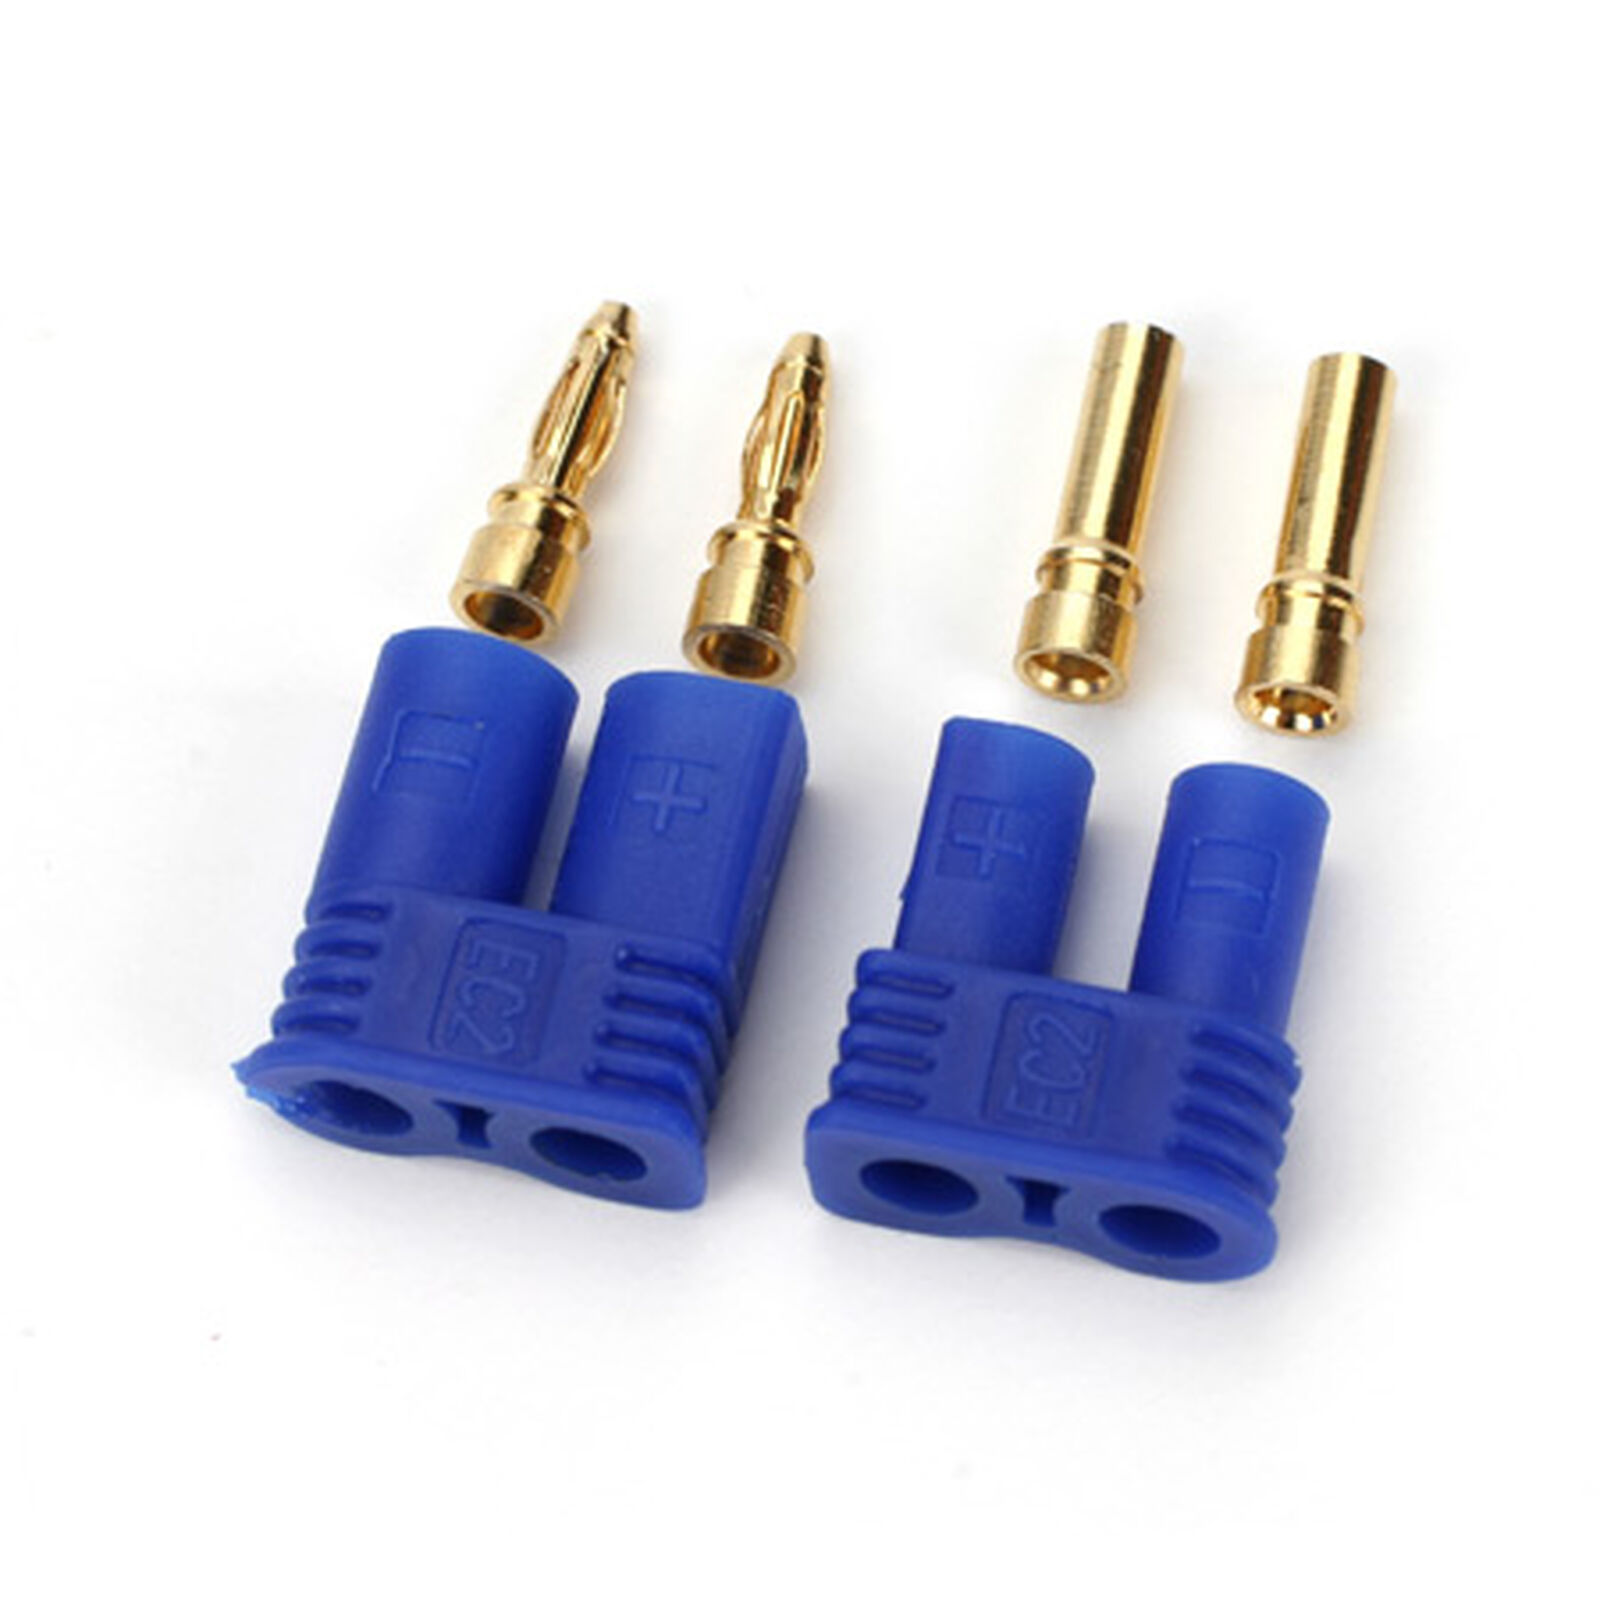 Connector: EC2 Device and EC2 Battery Set